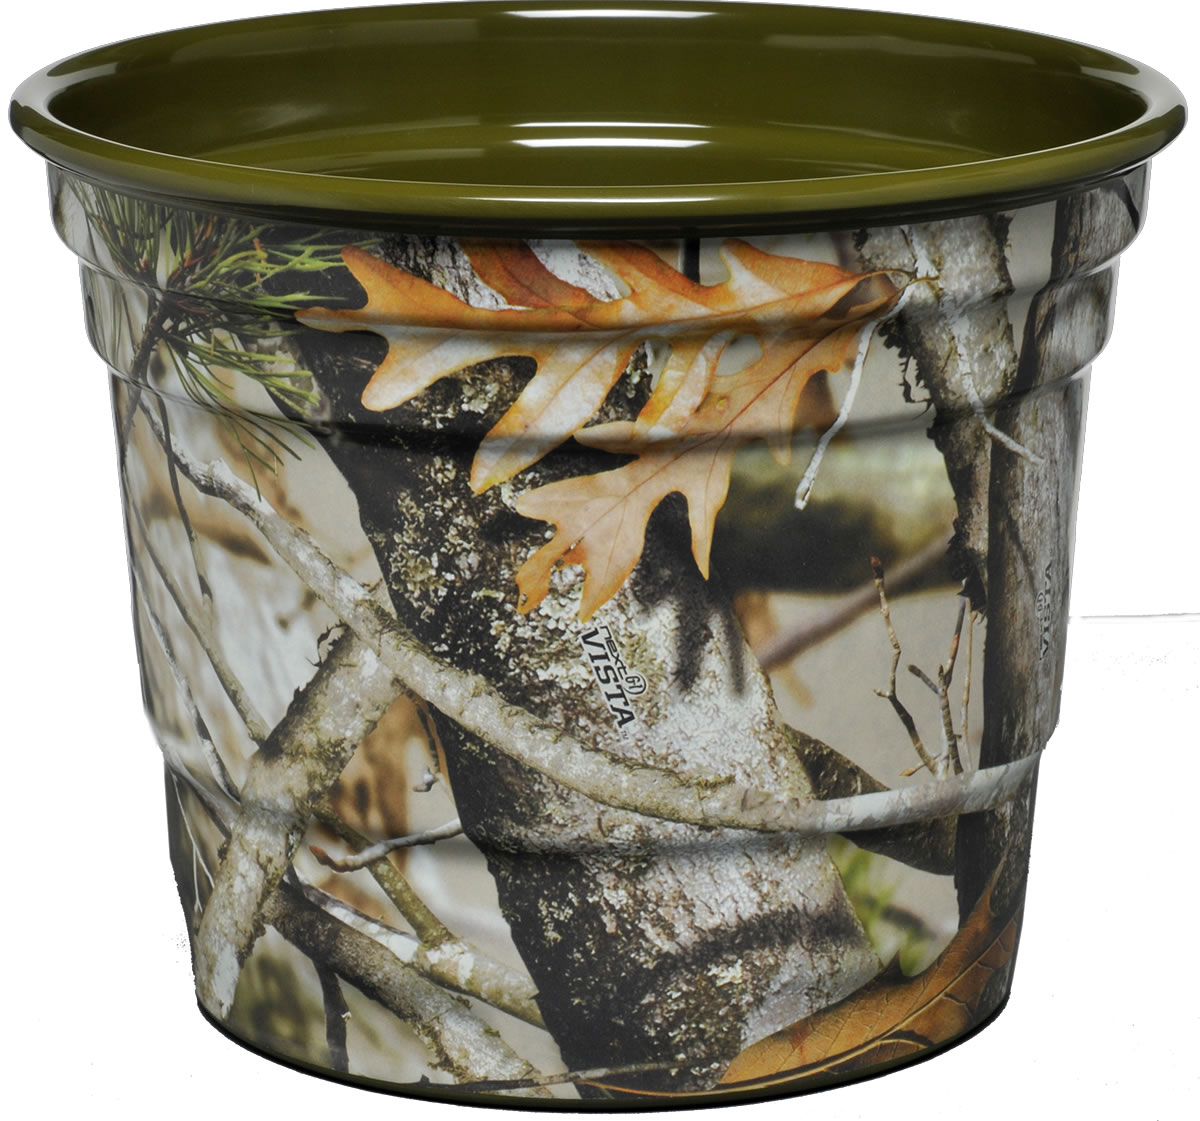 NEXT Camo Party Bucket -Hunter Green Interior